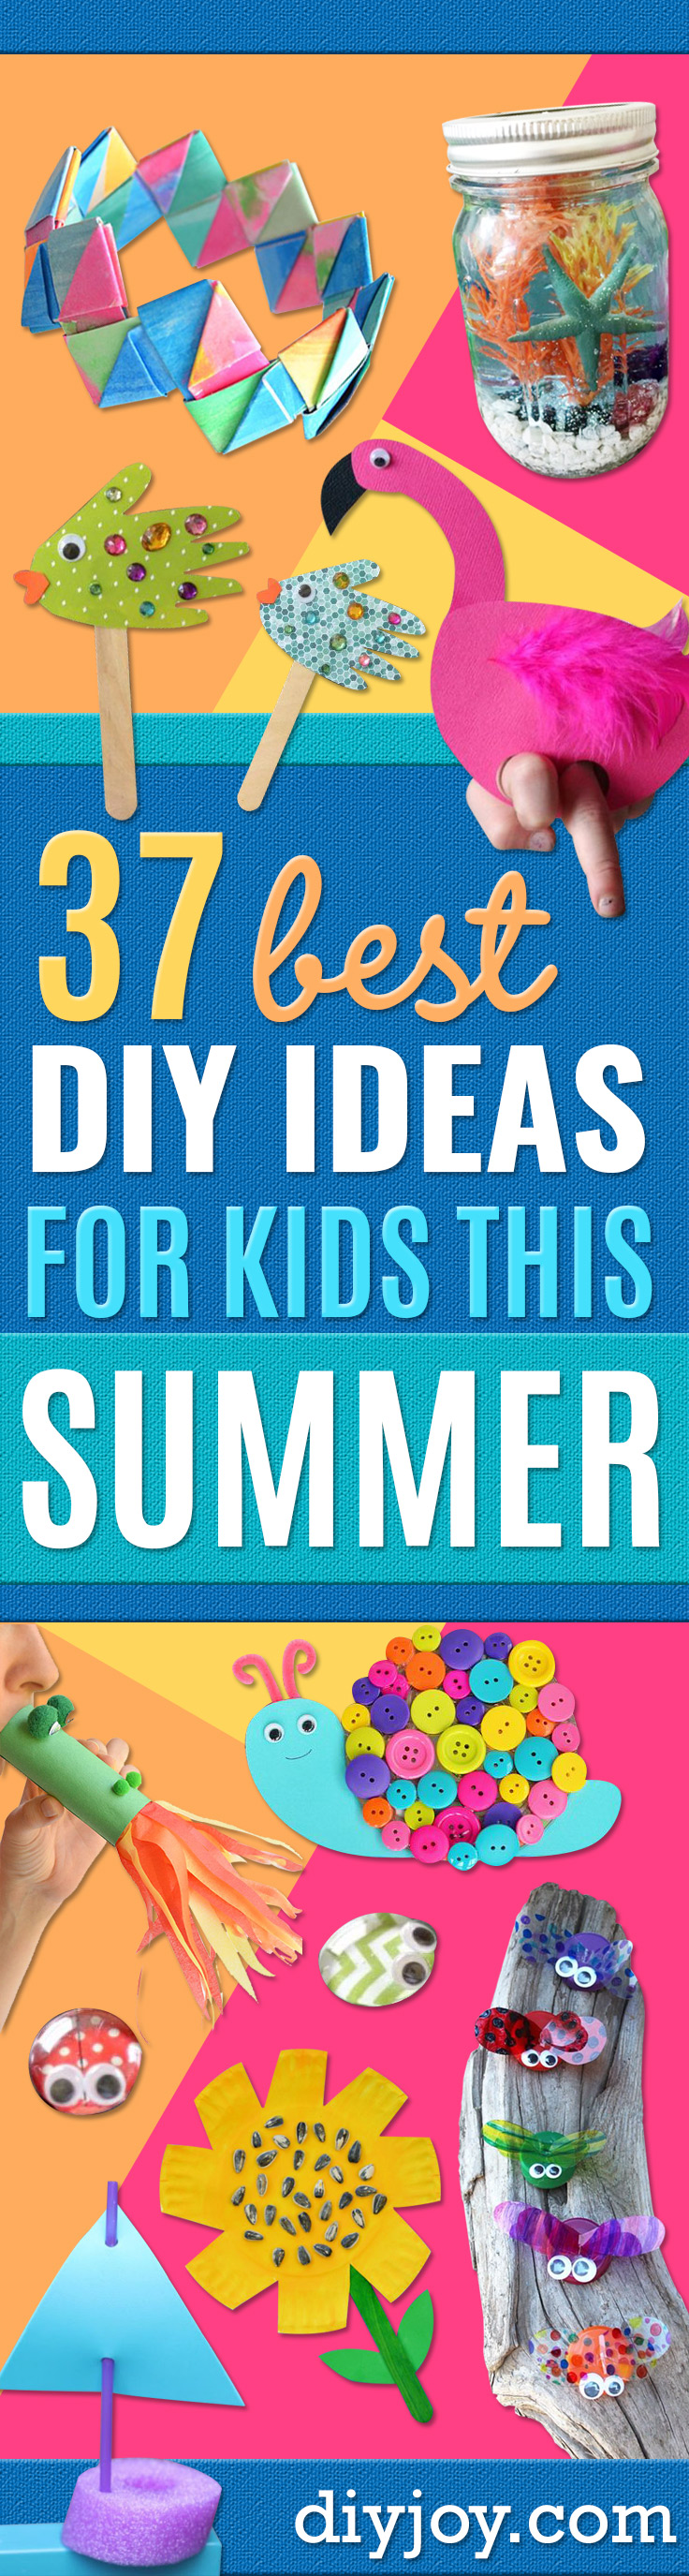 DIY Ideas for Kids To Make This Summer - Fun Crafts and Cool Projects for Boys and Girls To Make at Home - Easy and Cheap Do It Yourself Project Ideas With Paint, Glue, Paper, Glitter, Chalk and Things You Can Find Around The House - Creative Arts and Crafts Ideas for Children http://diyjoy.com/diy-ideas-kids-summer